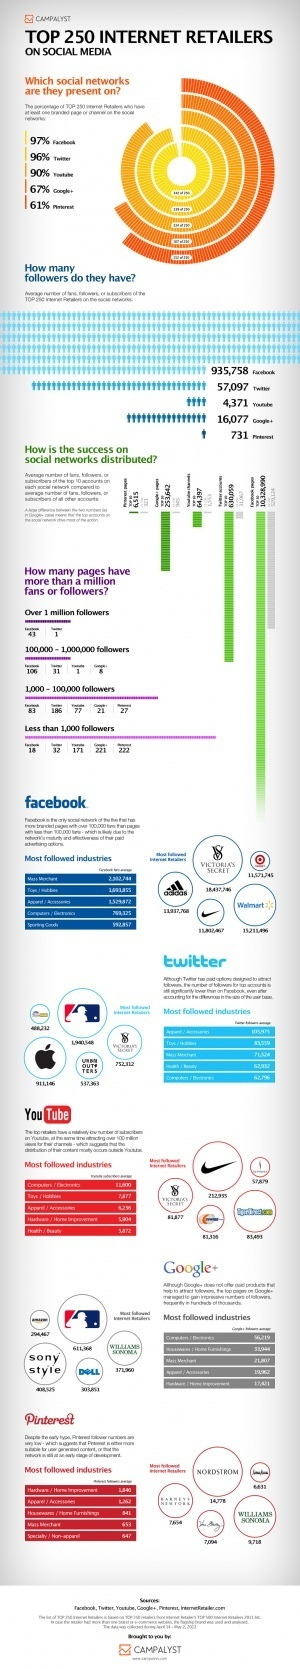 Top 250 Internet Retailers On Social Media [INFOGRAPHIC] | #Mocial -- Social, Mobile, Local Retail #NYC | Scoop.it